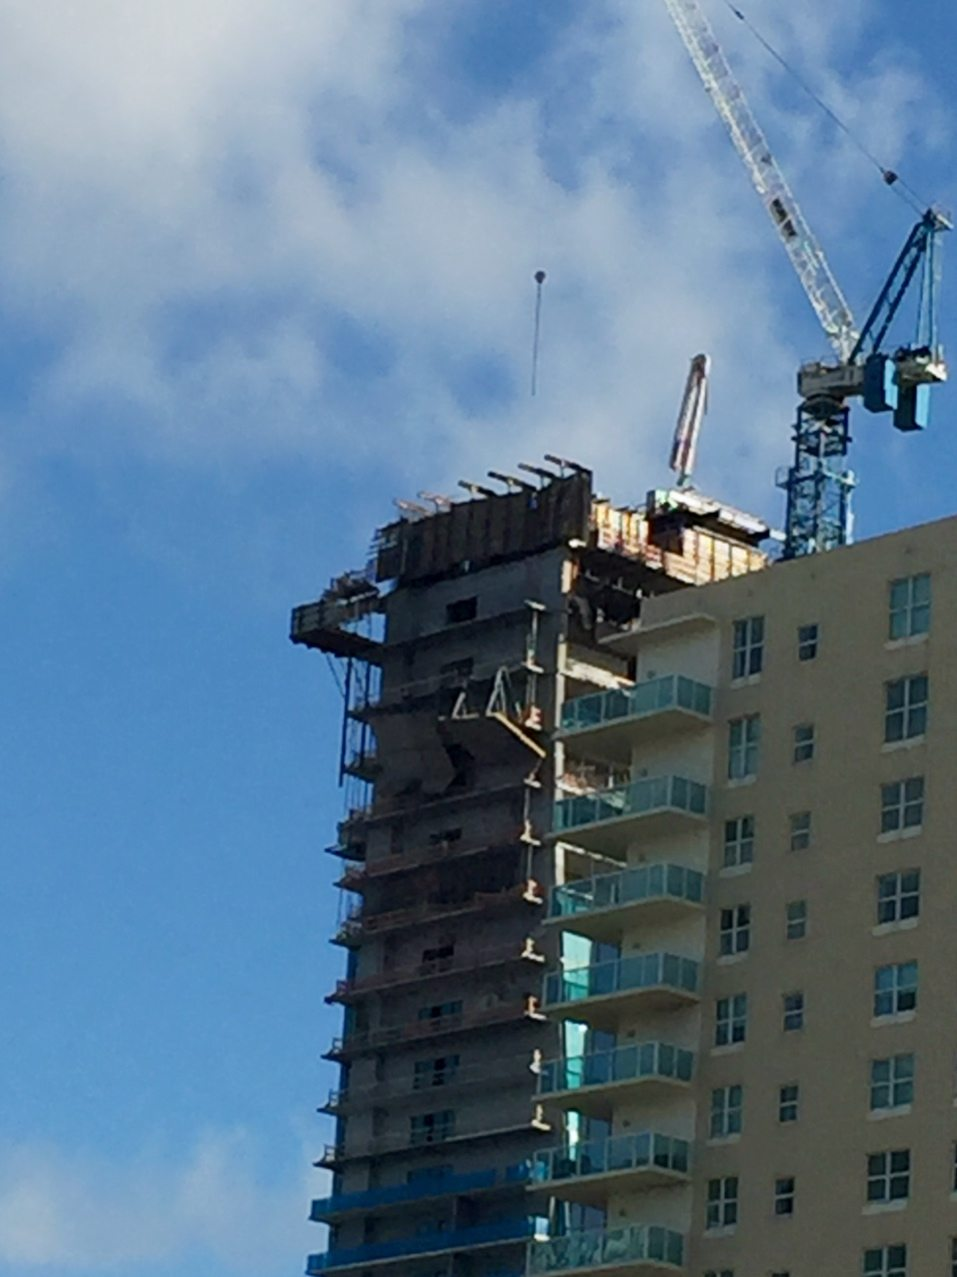 echo-brickell-construction-accident